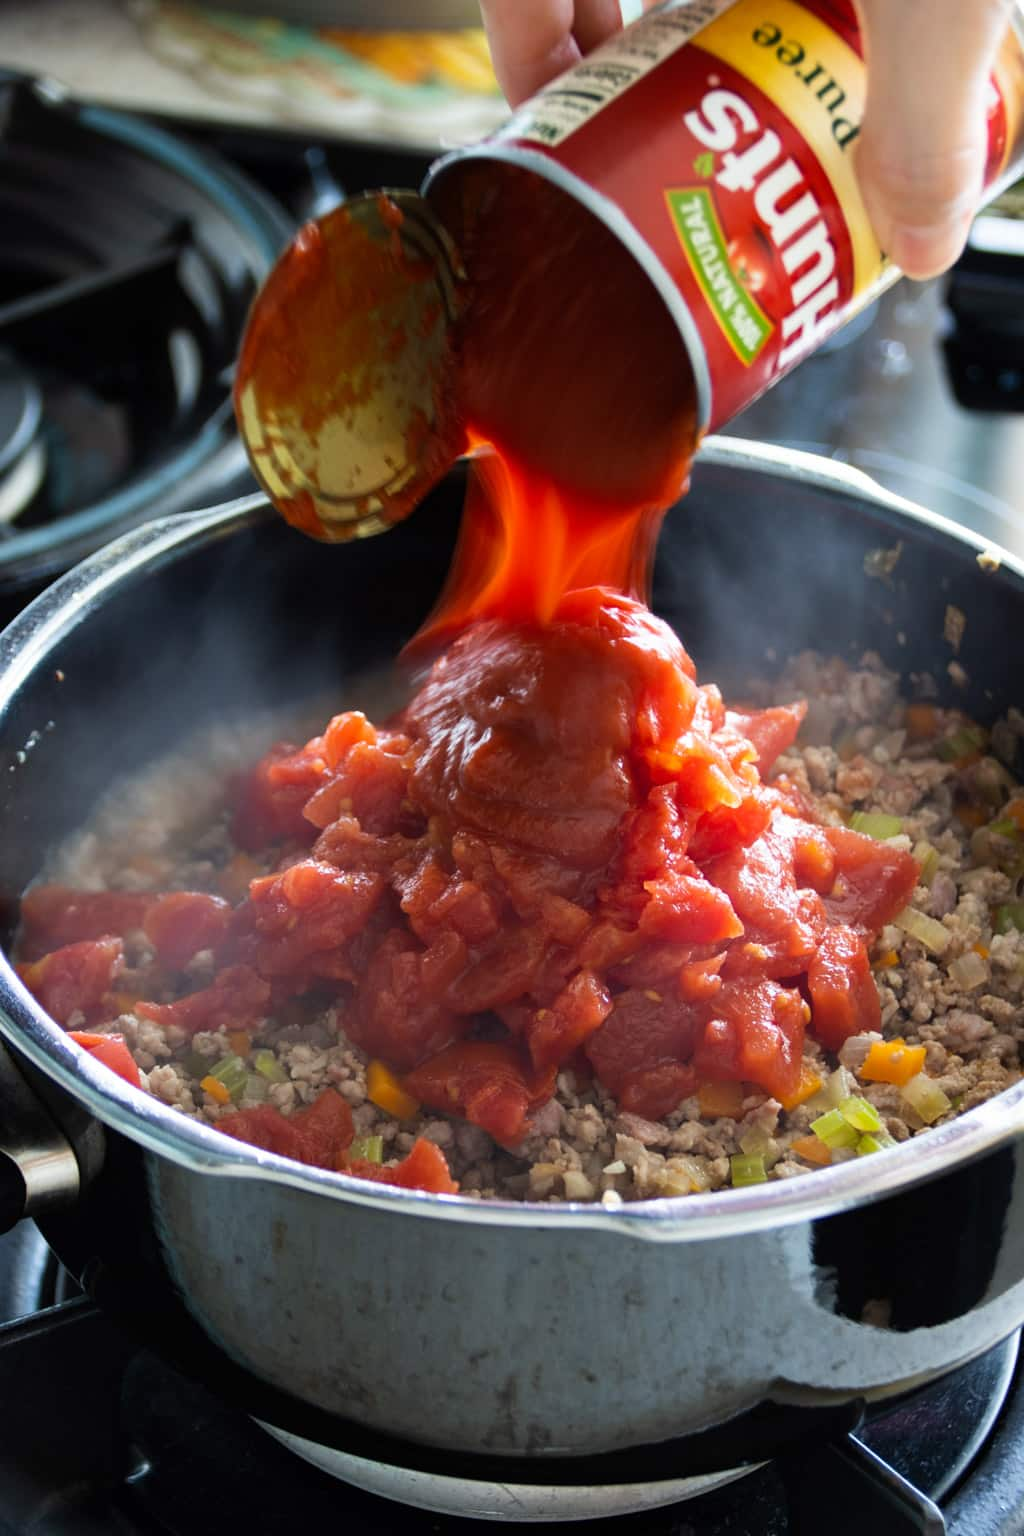 Adding diced tomatoes, tomato sauce and paste to a cooking pot of bolognese sauce